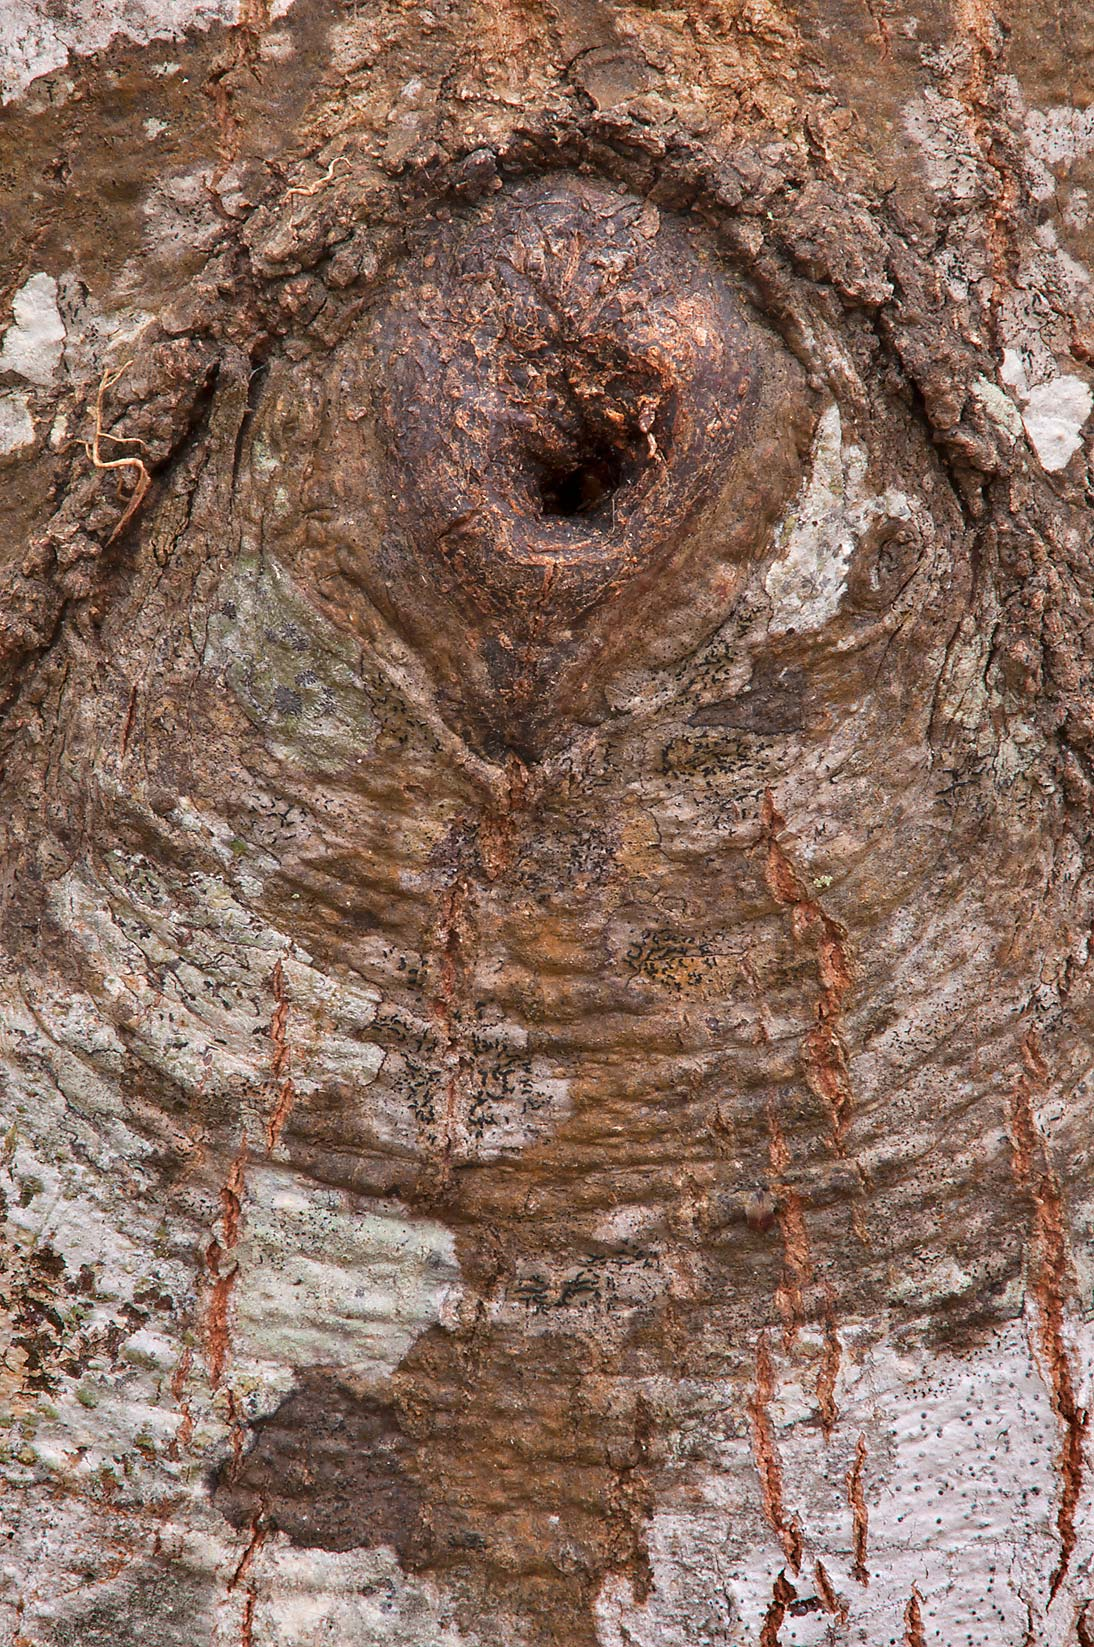 Gnarl of water oak in Lick Creek Park. College Station, Texas